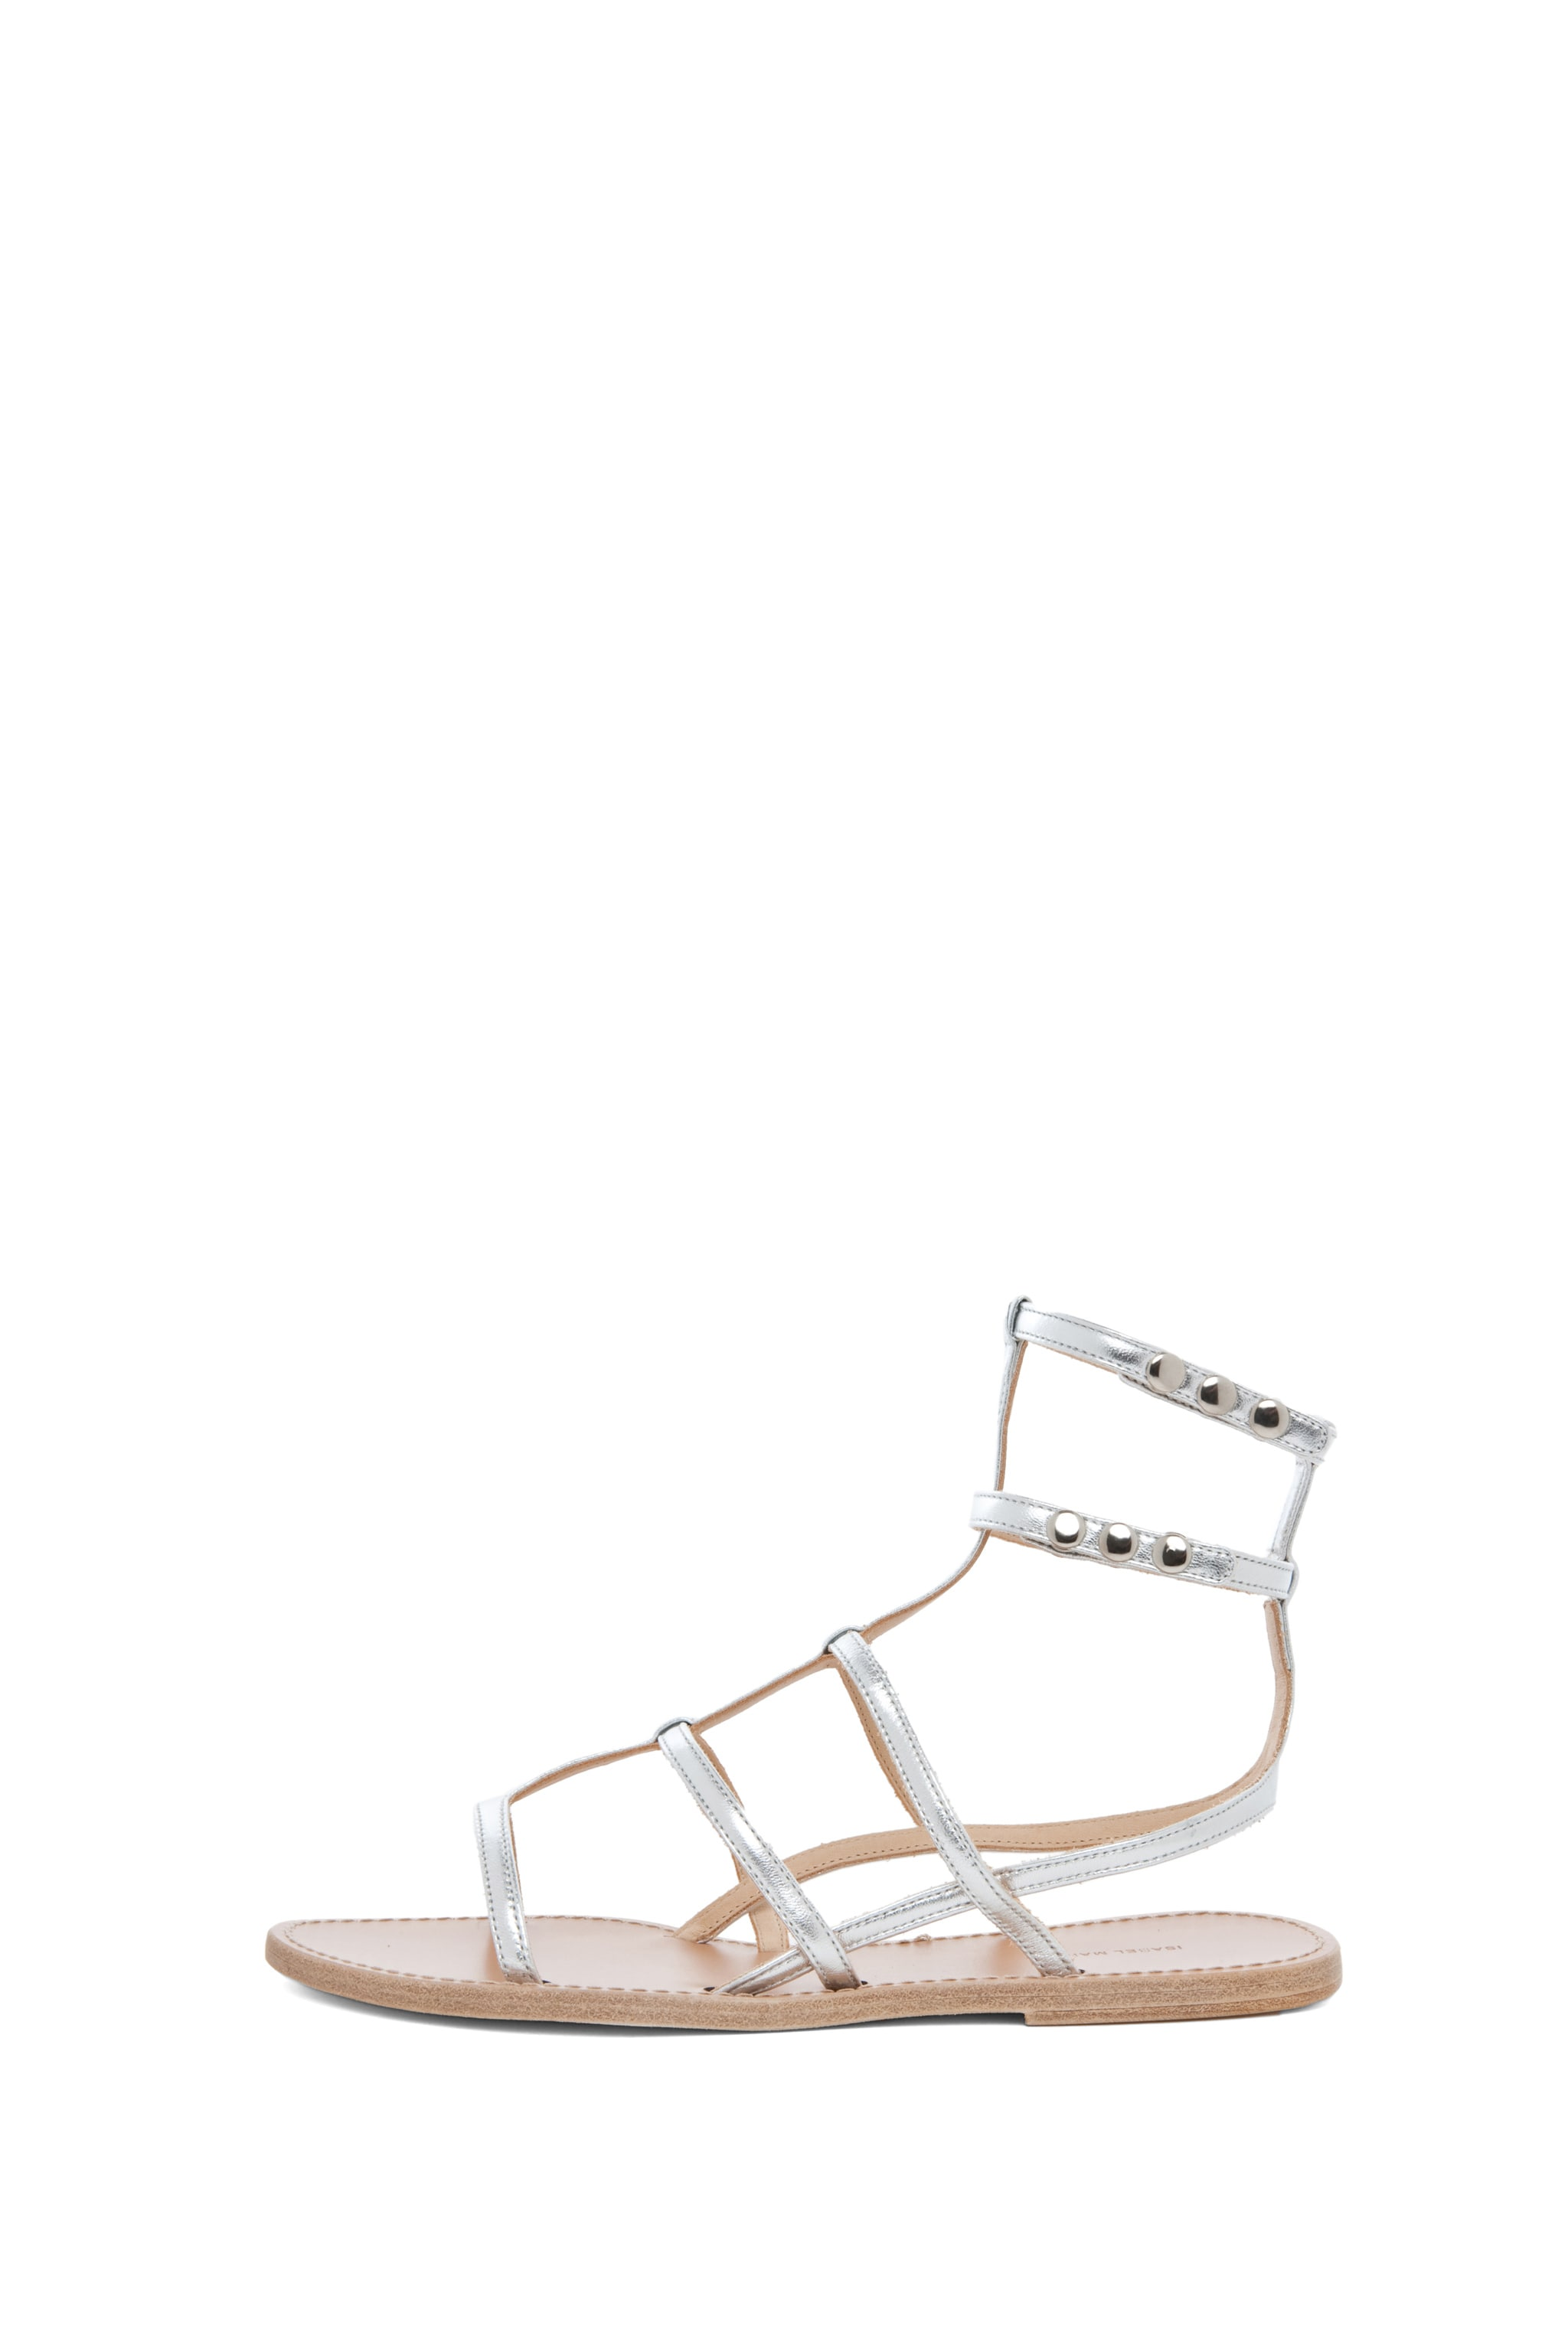 Image 1 of Isabel Marant Orion Sandals in Silver